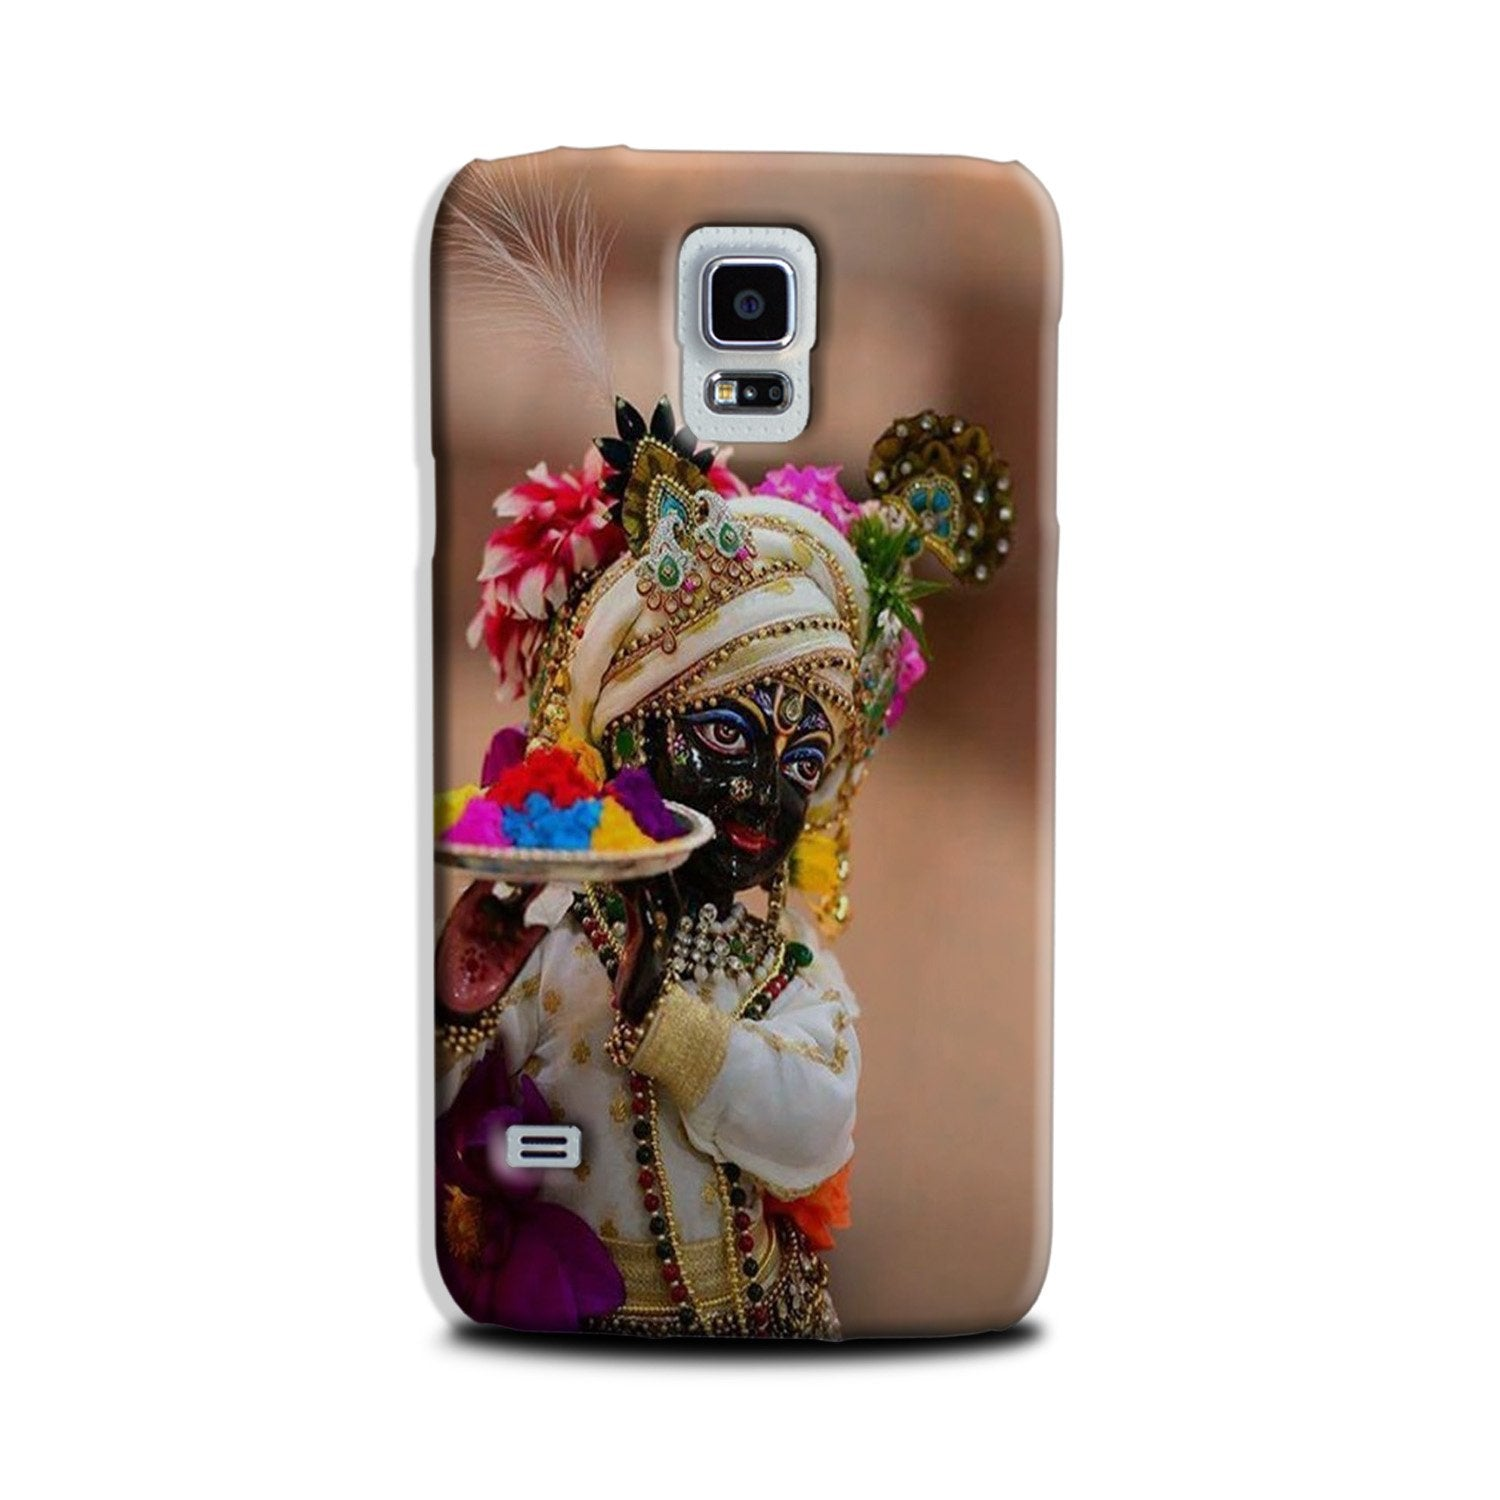 Lord Krishna2 Case for Galaxy S5